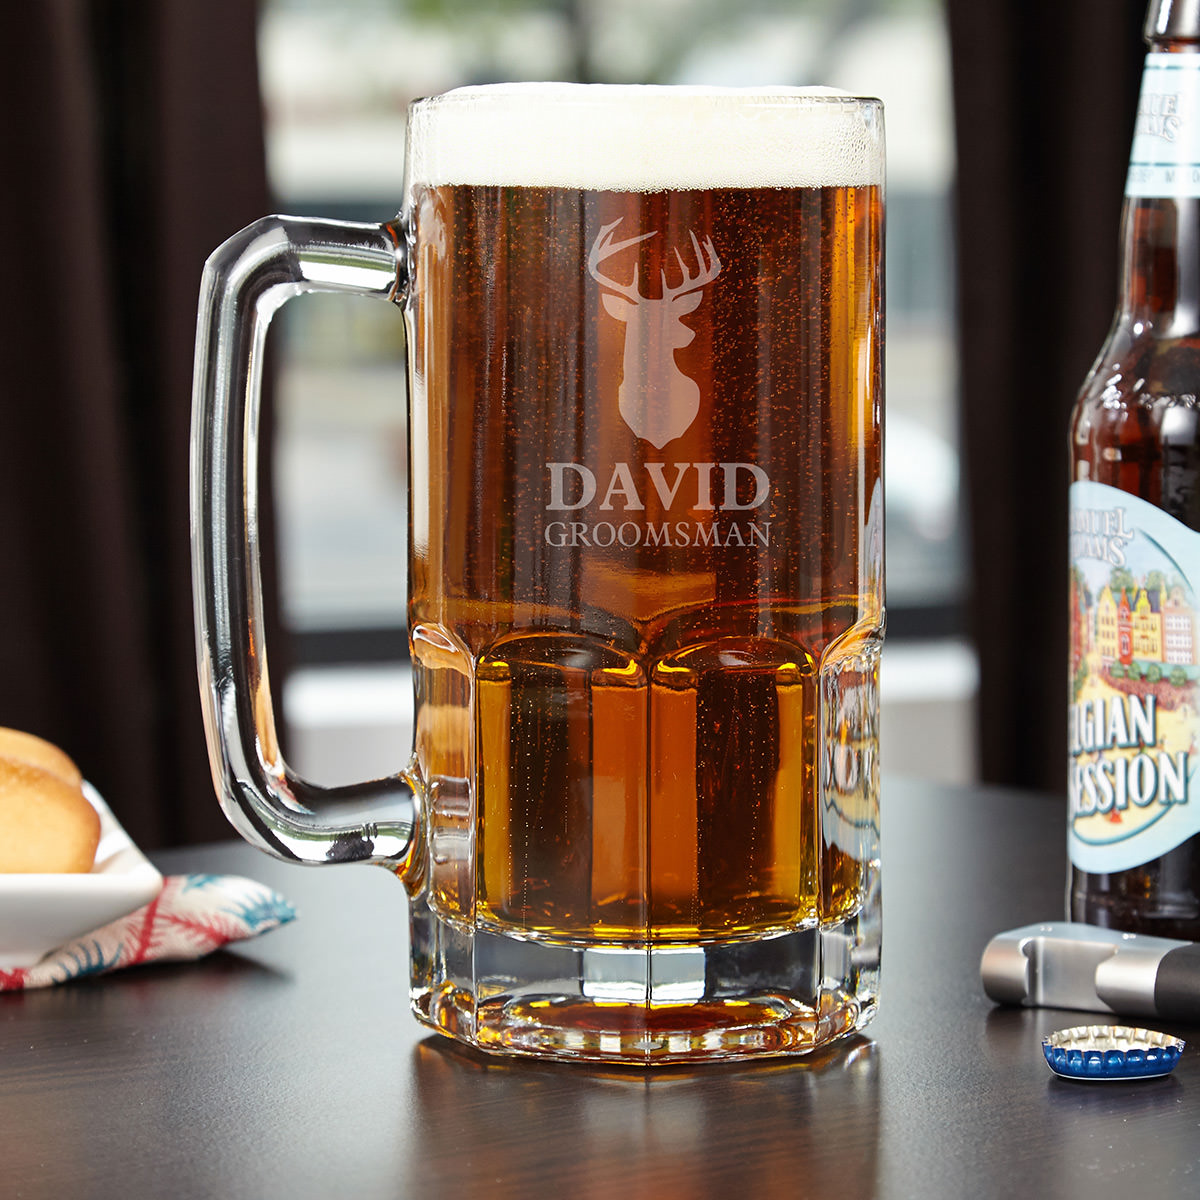 Nothing makes a guy look more masculine than drinking a beer from a giant beer mug. It gives you the feeling of being a long-haired bearded Viking. Make Odin proud with an engraved beer mug even he would drink from! Give this feeling of manhood to the mos #mug